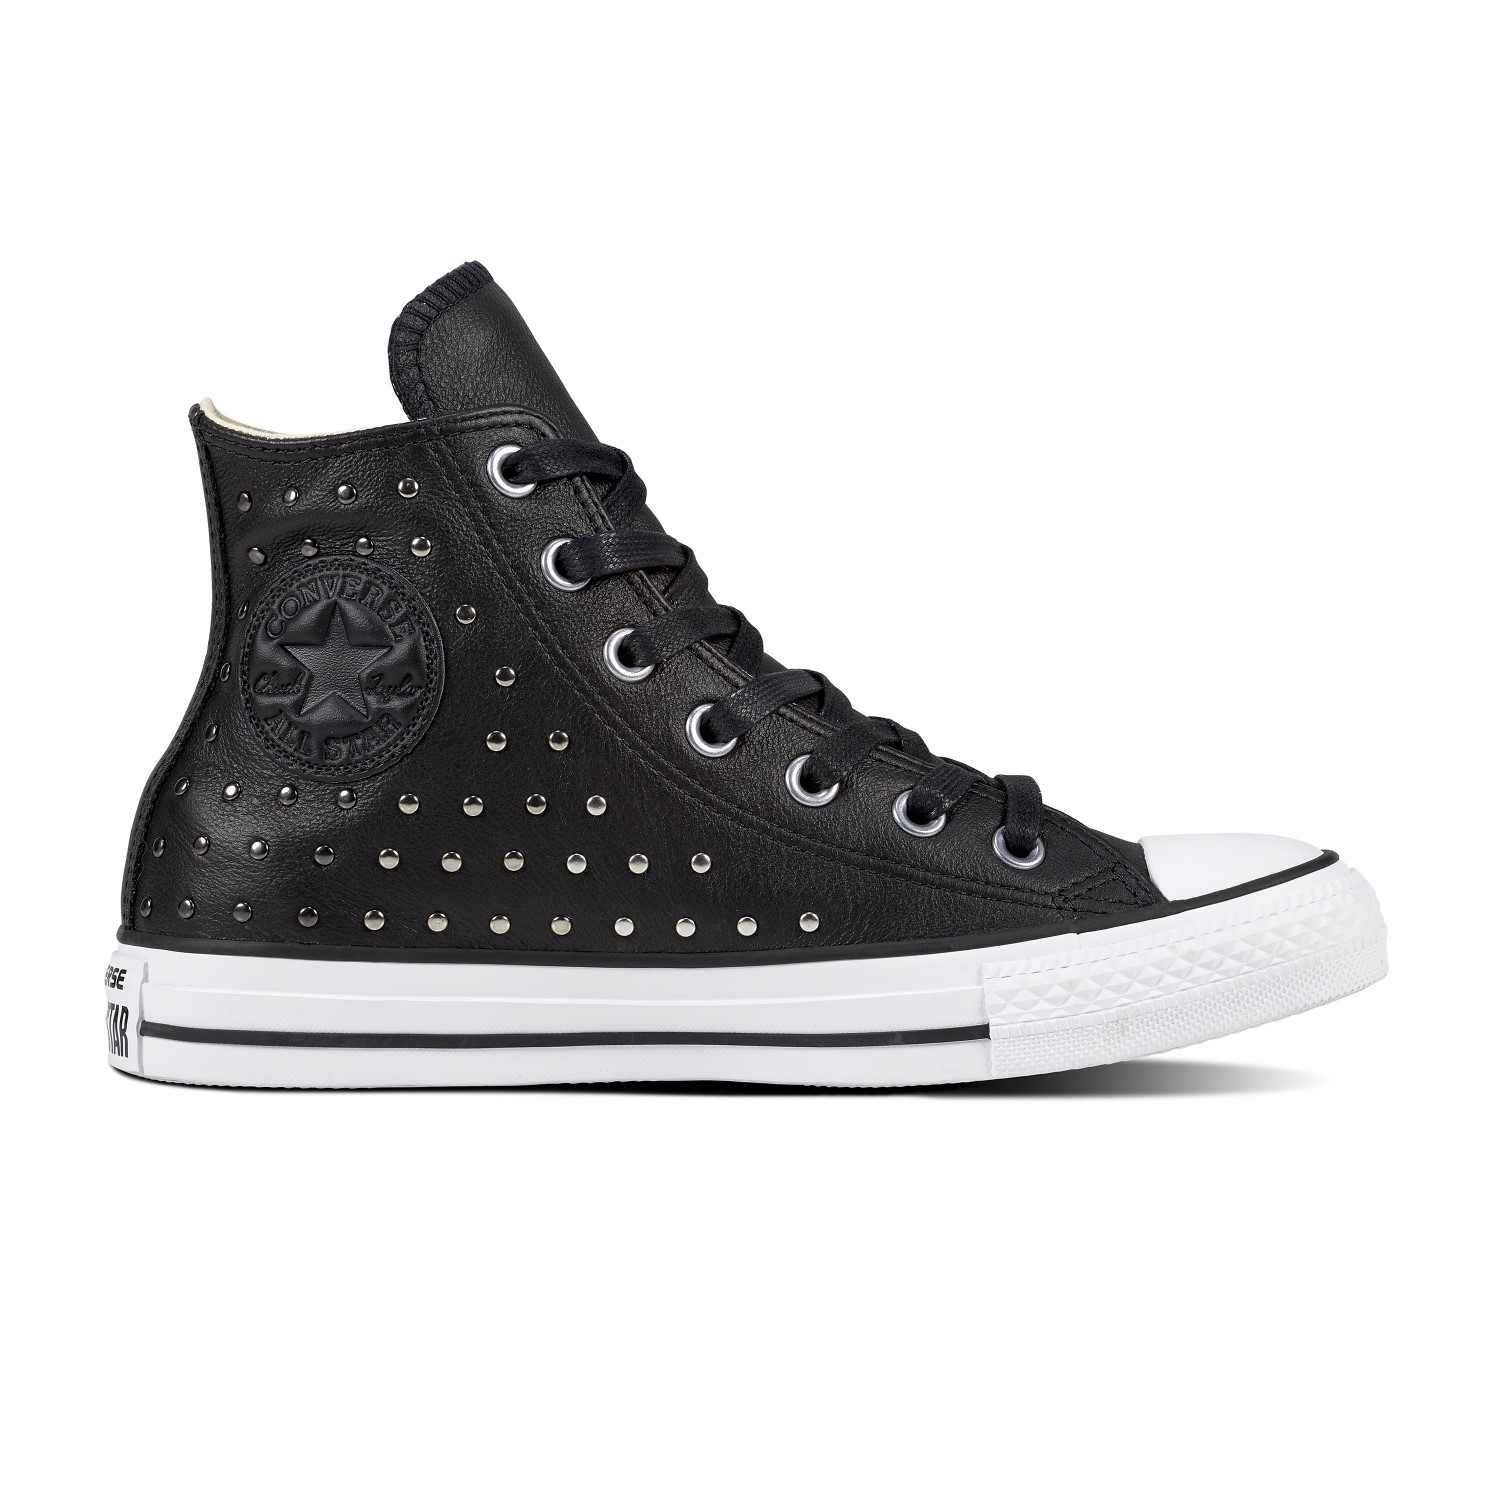 Converse black sneakers with Chuck Taylor All Star Hi Black / Silver studs